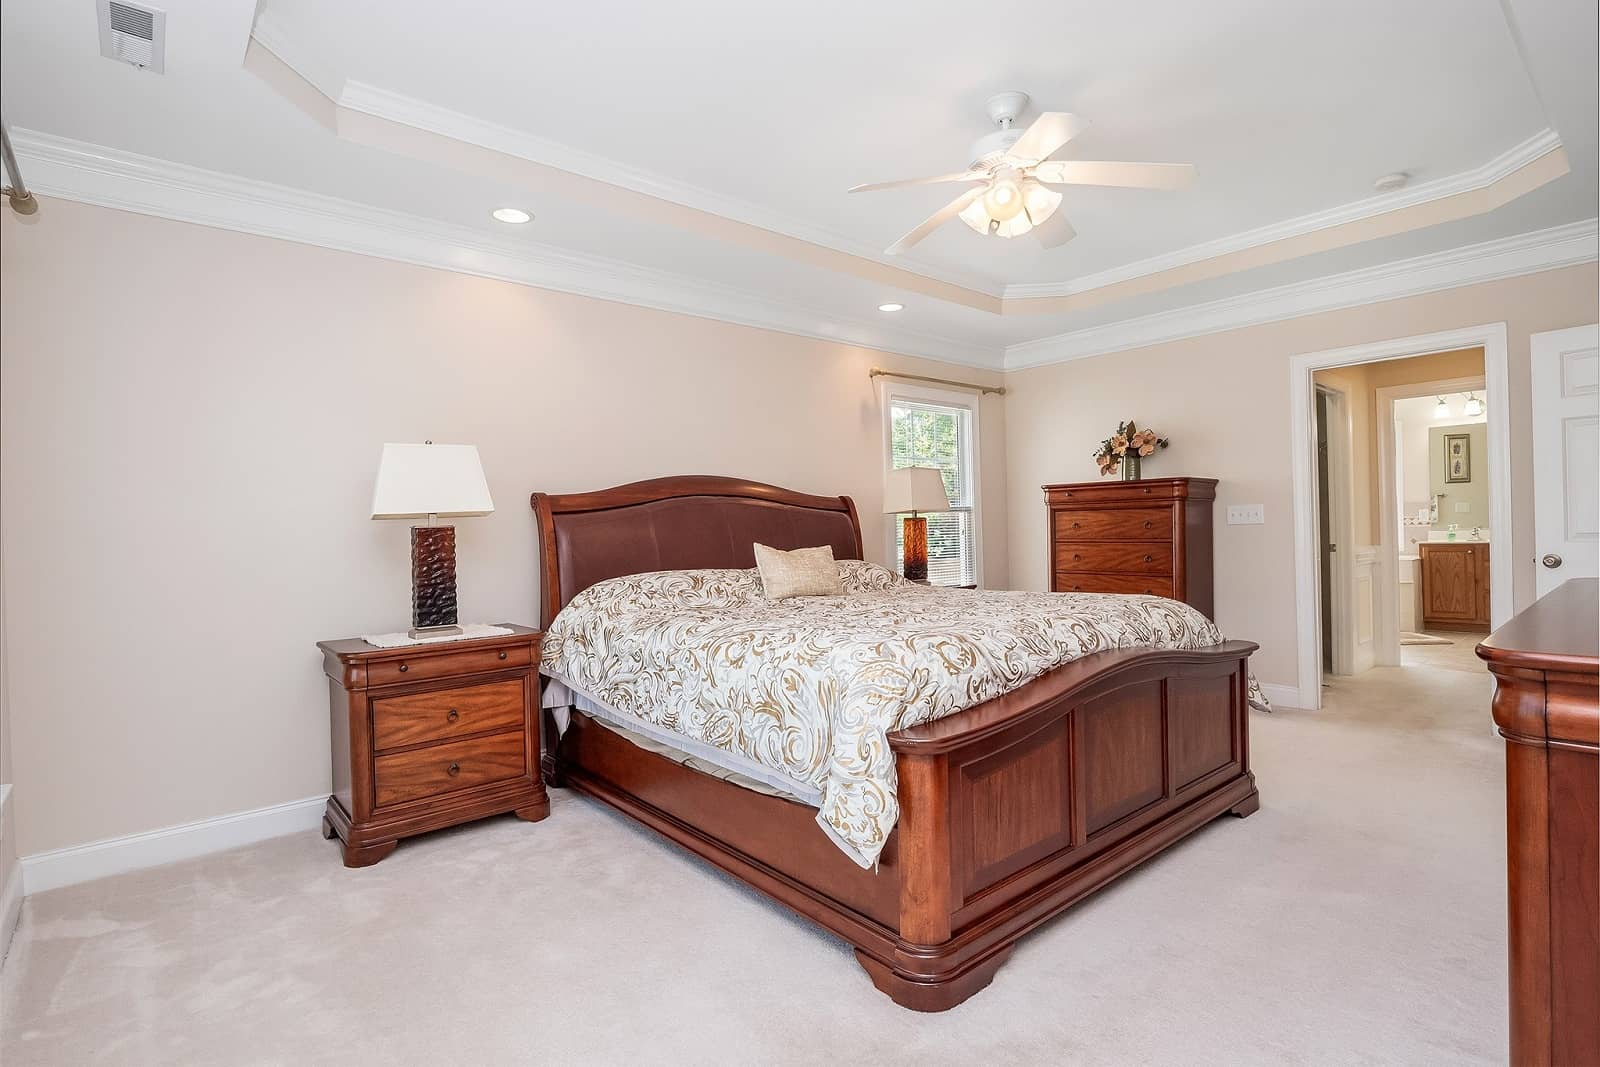 Real Estate Photography in Cary - NC - USA - Bedroom View